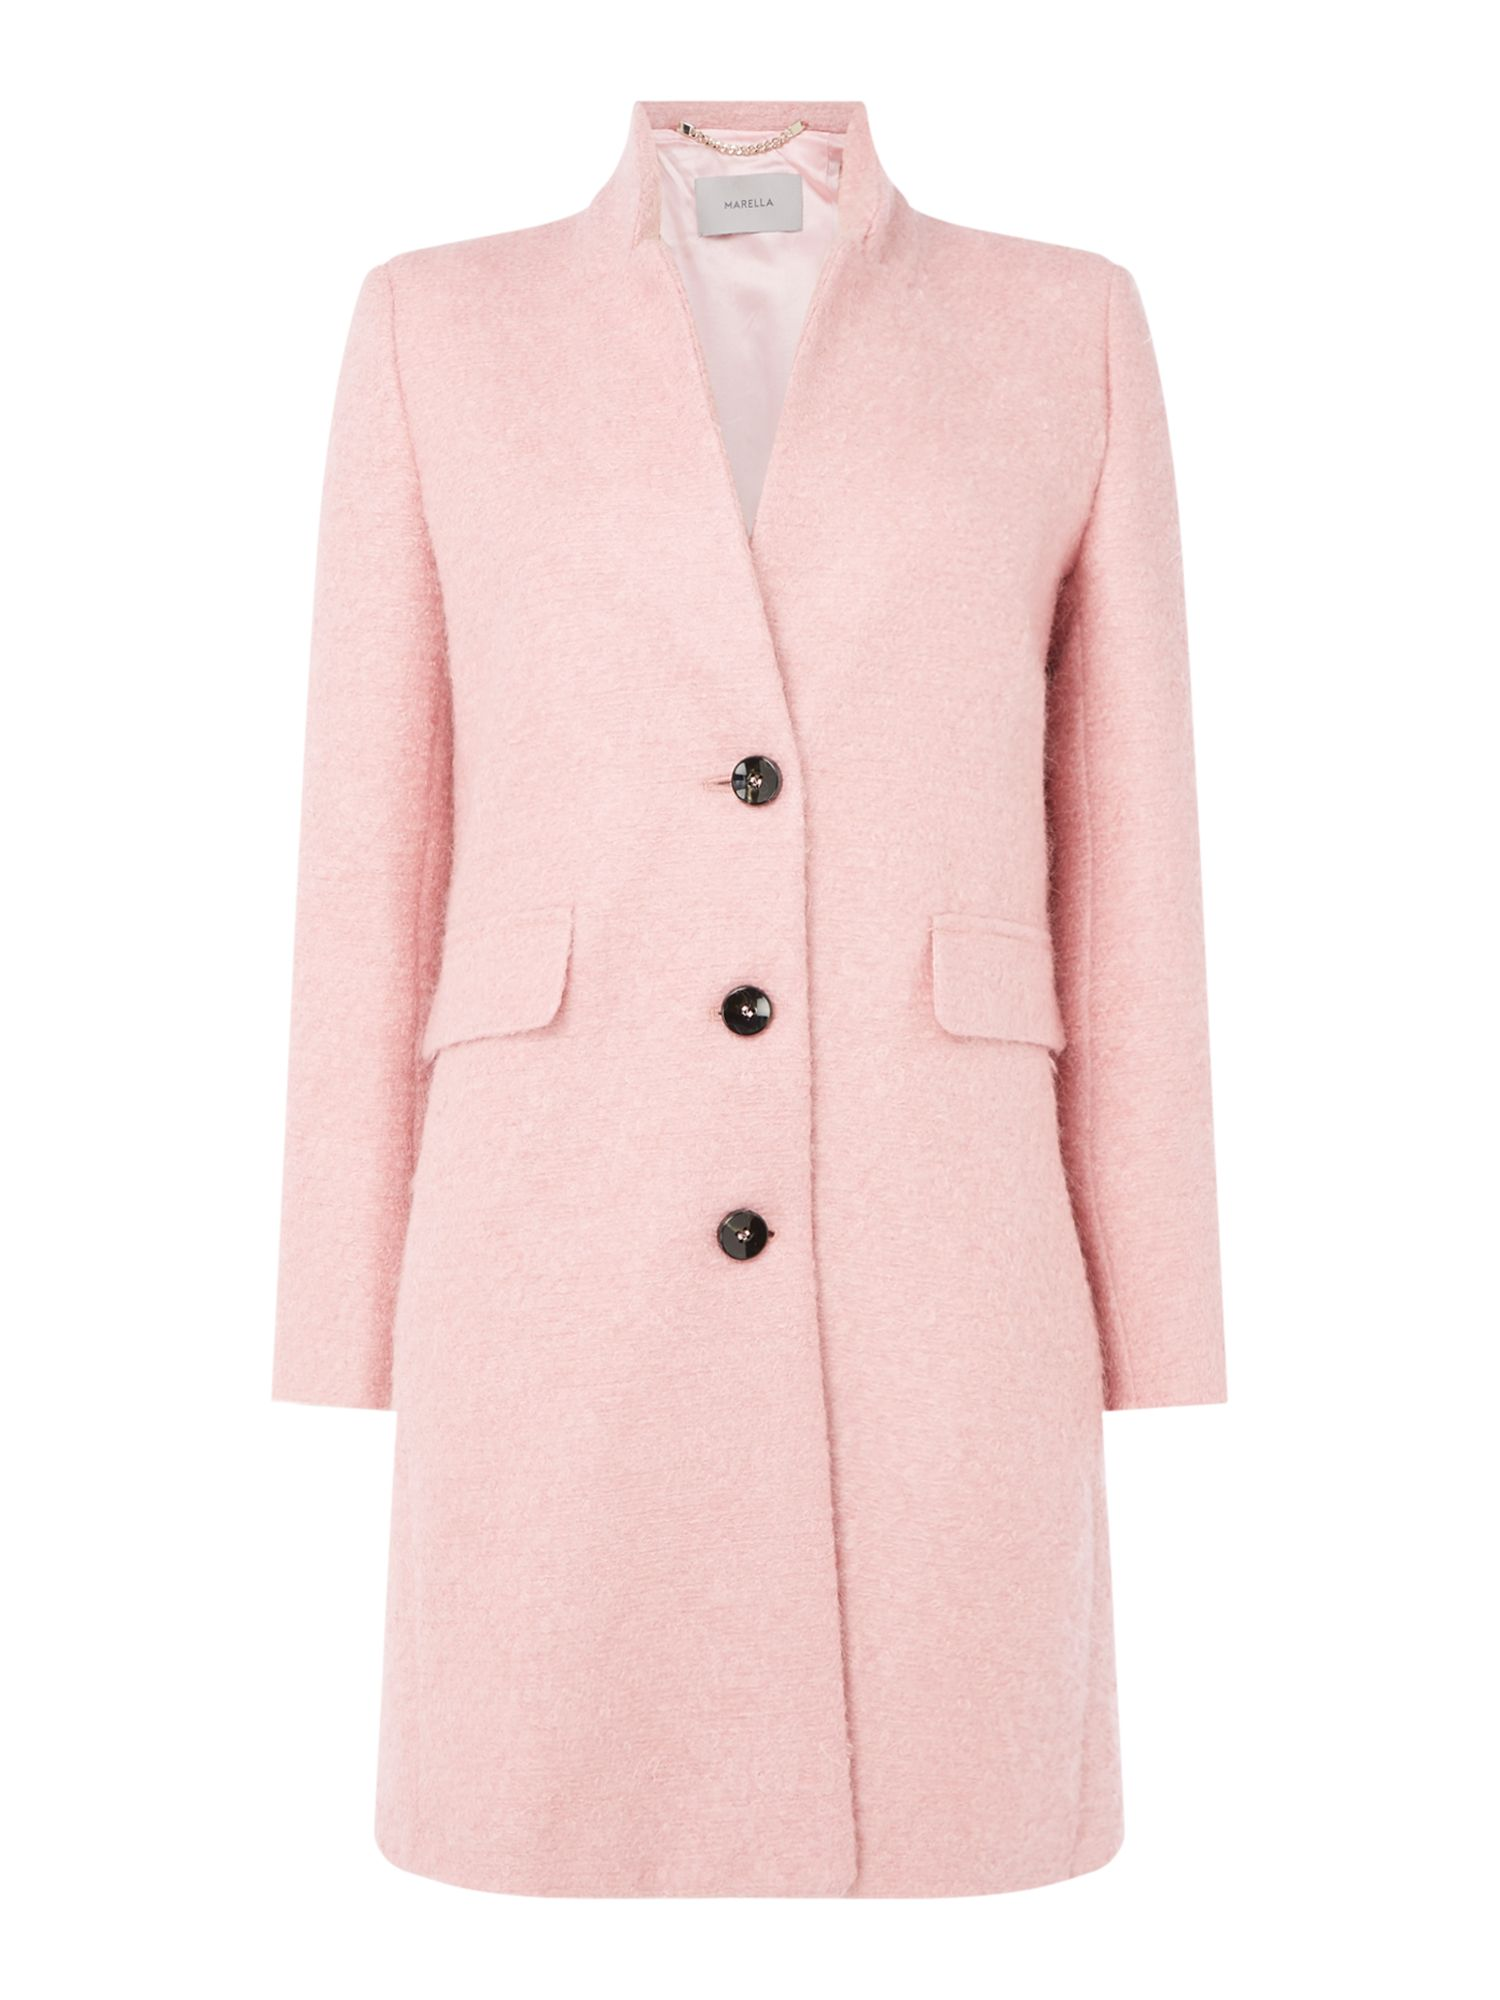 Marella Liguria long sleeve pink wool coat, Pink